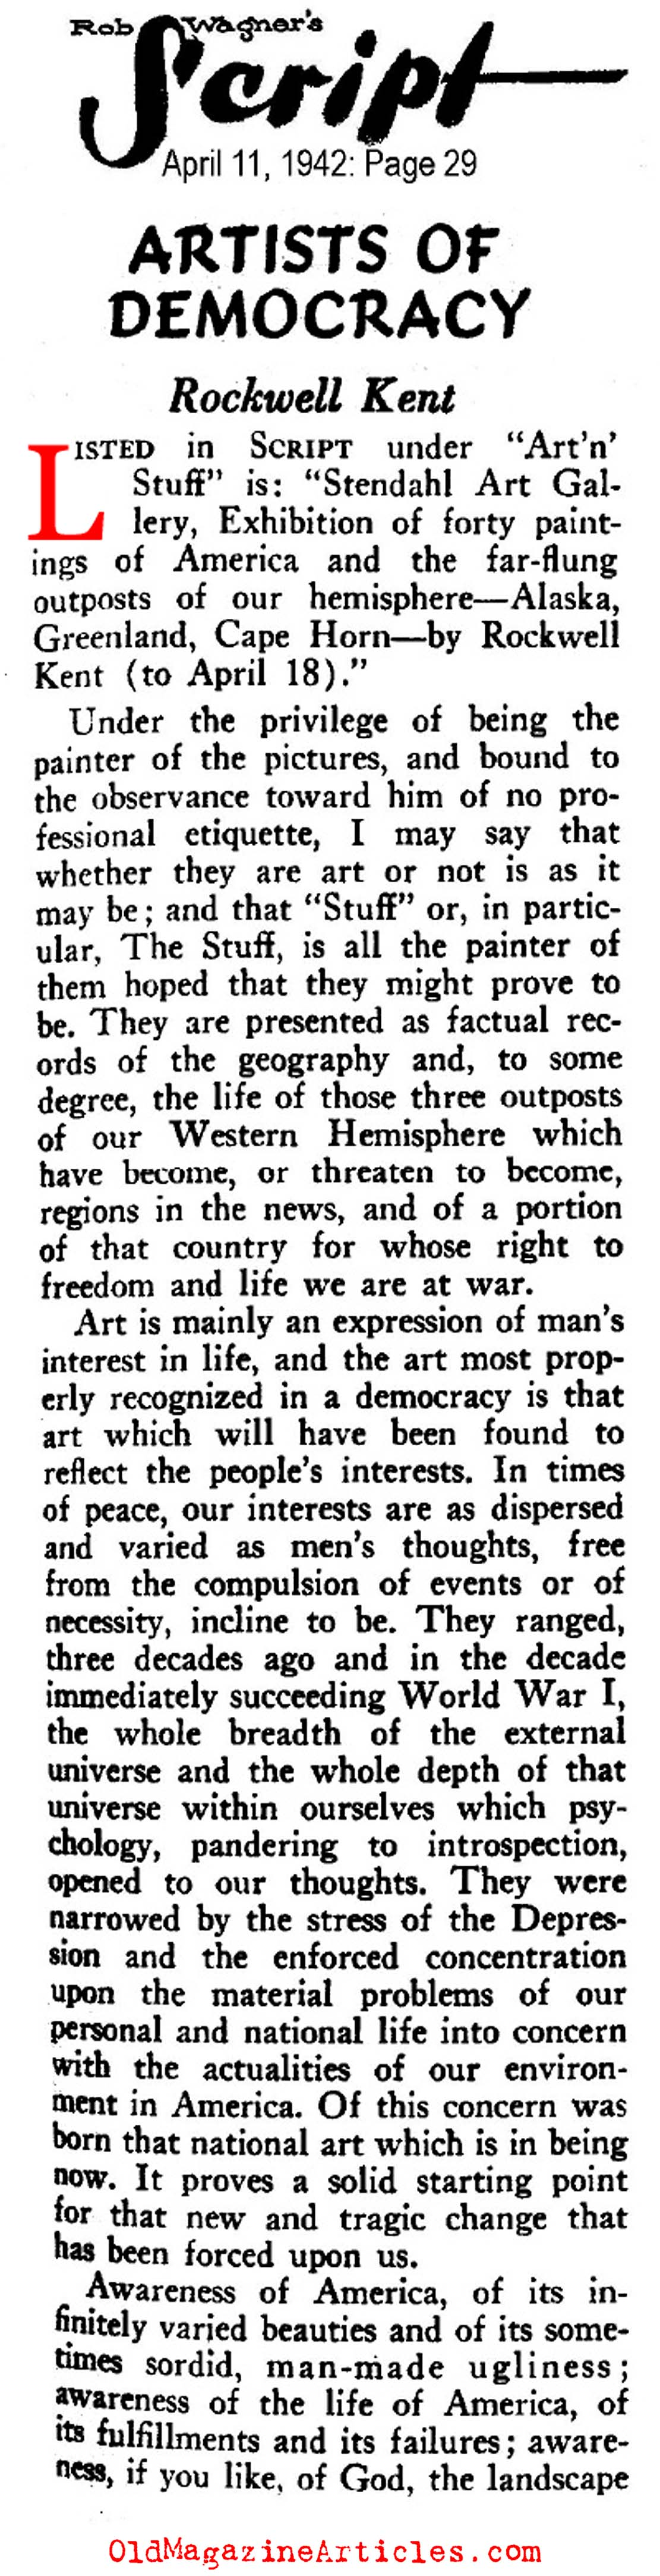 Rockwell Kent: Artists of Democracy (Rob Wagner's Script Magazine, 1942)